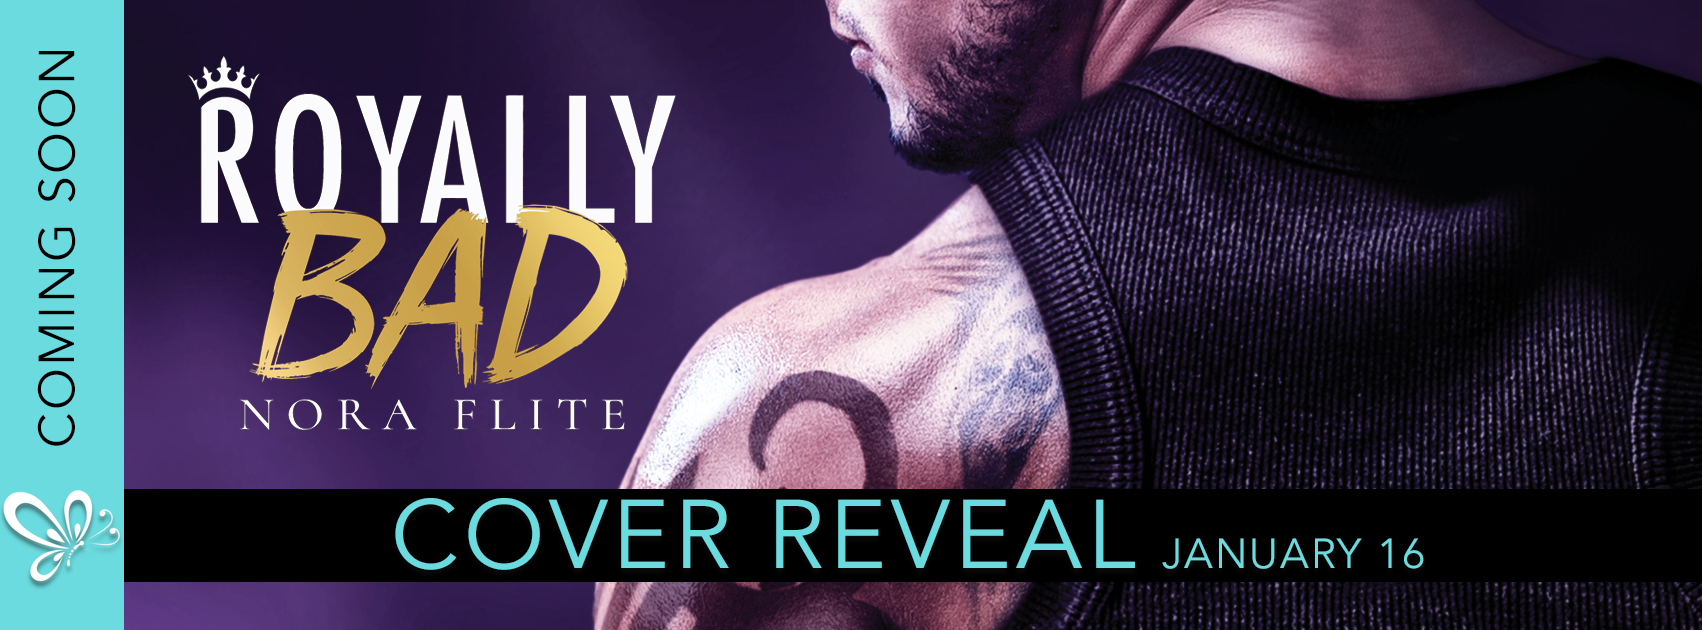 Royally Bad by Nora Flite Cover Reveal + Giveaway